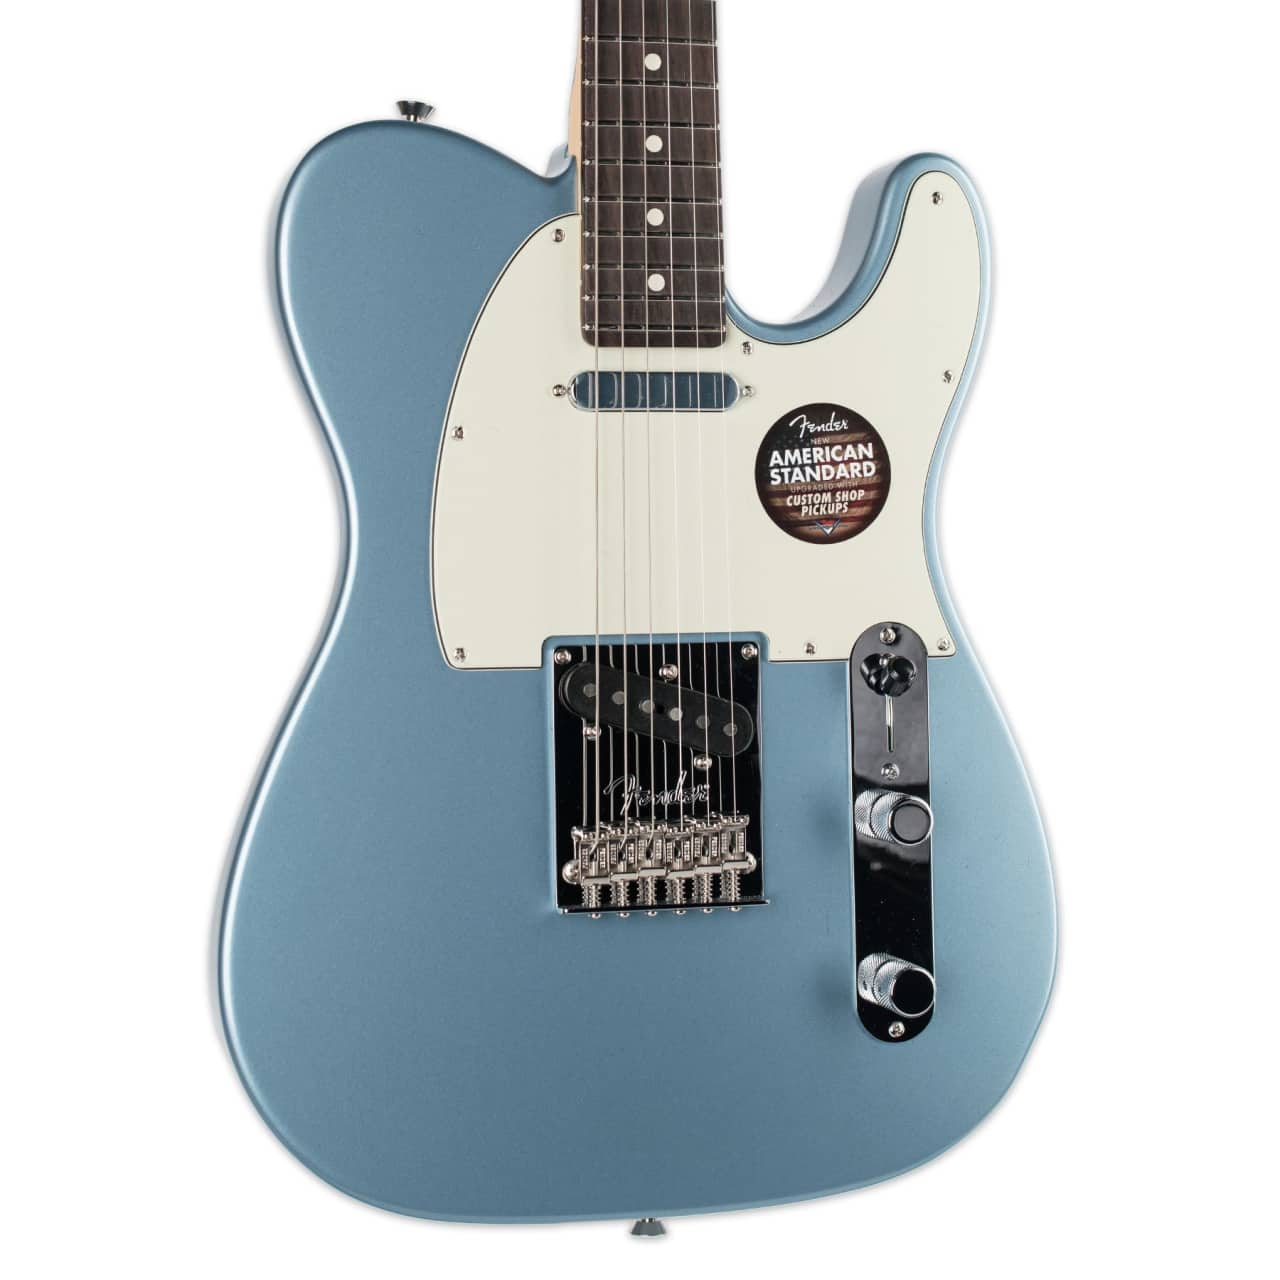 FENDER MAGNIFICENT 7 LIMITED EDITION AMERICAN STANDARD | Reverb